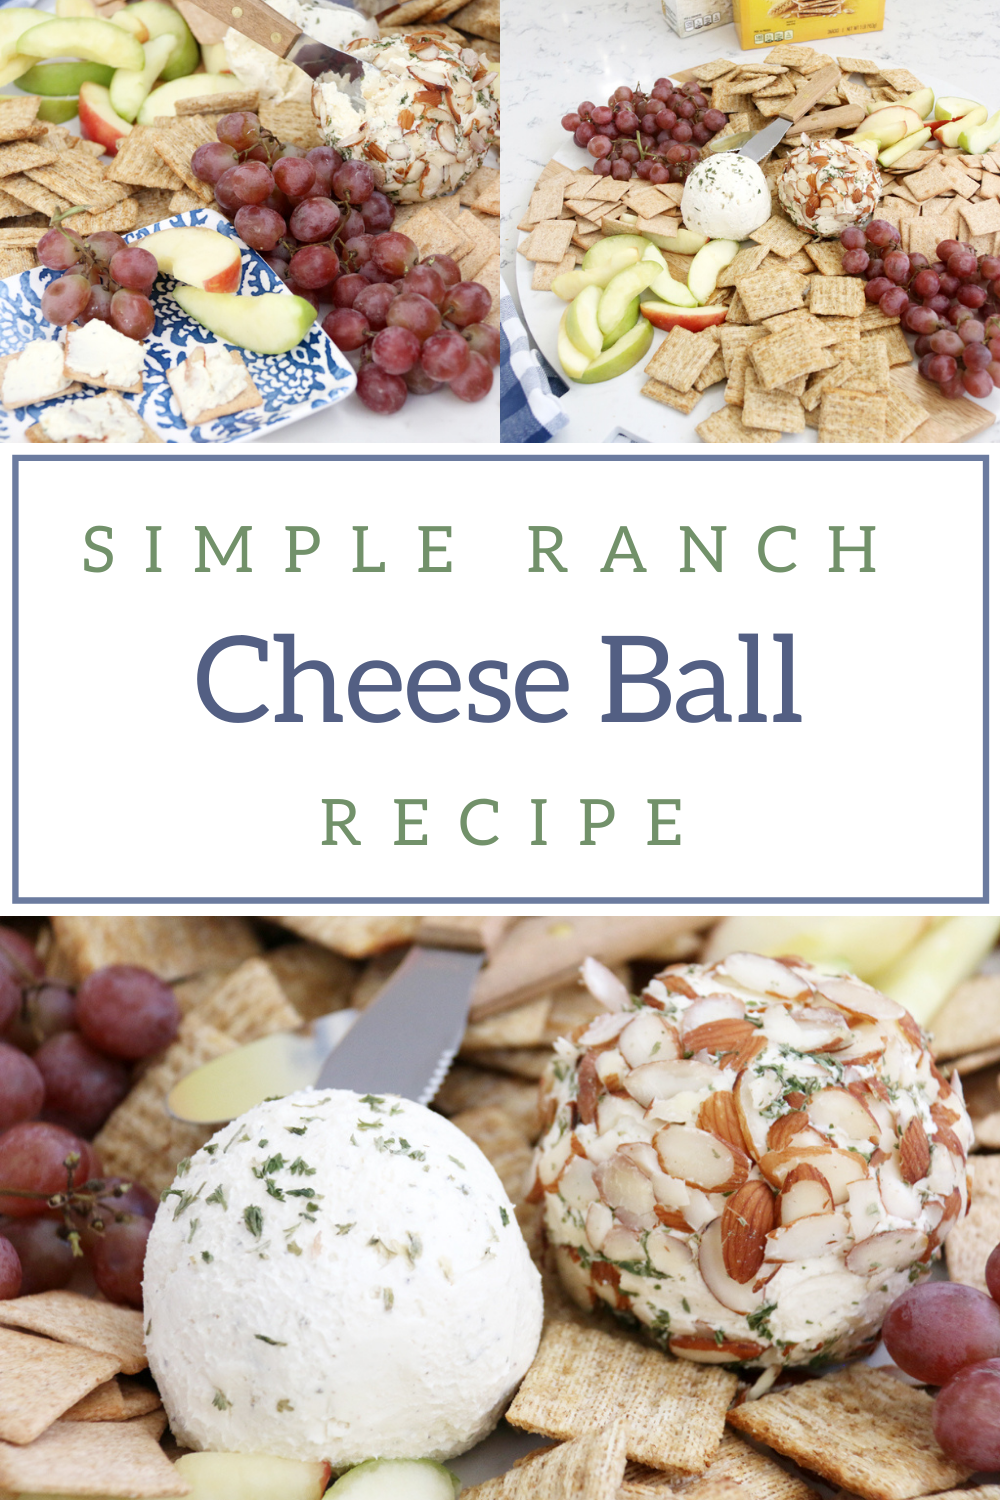 Simple Ranch Cheese Ball Recipe perfect for holiday parties